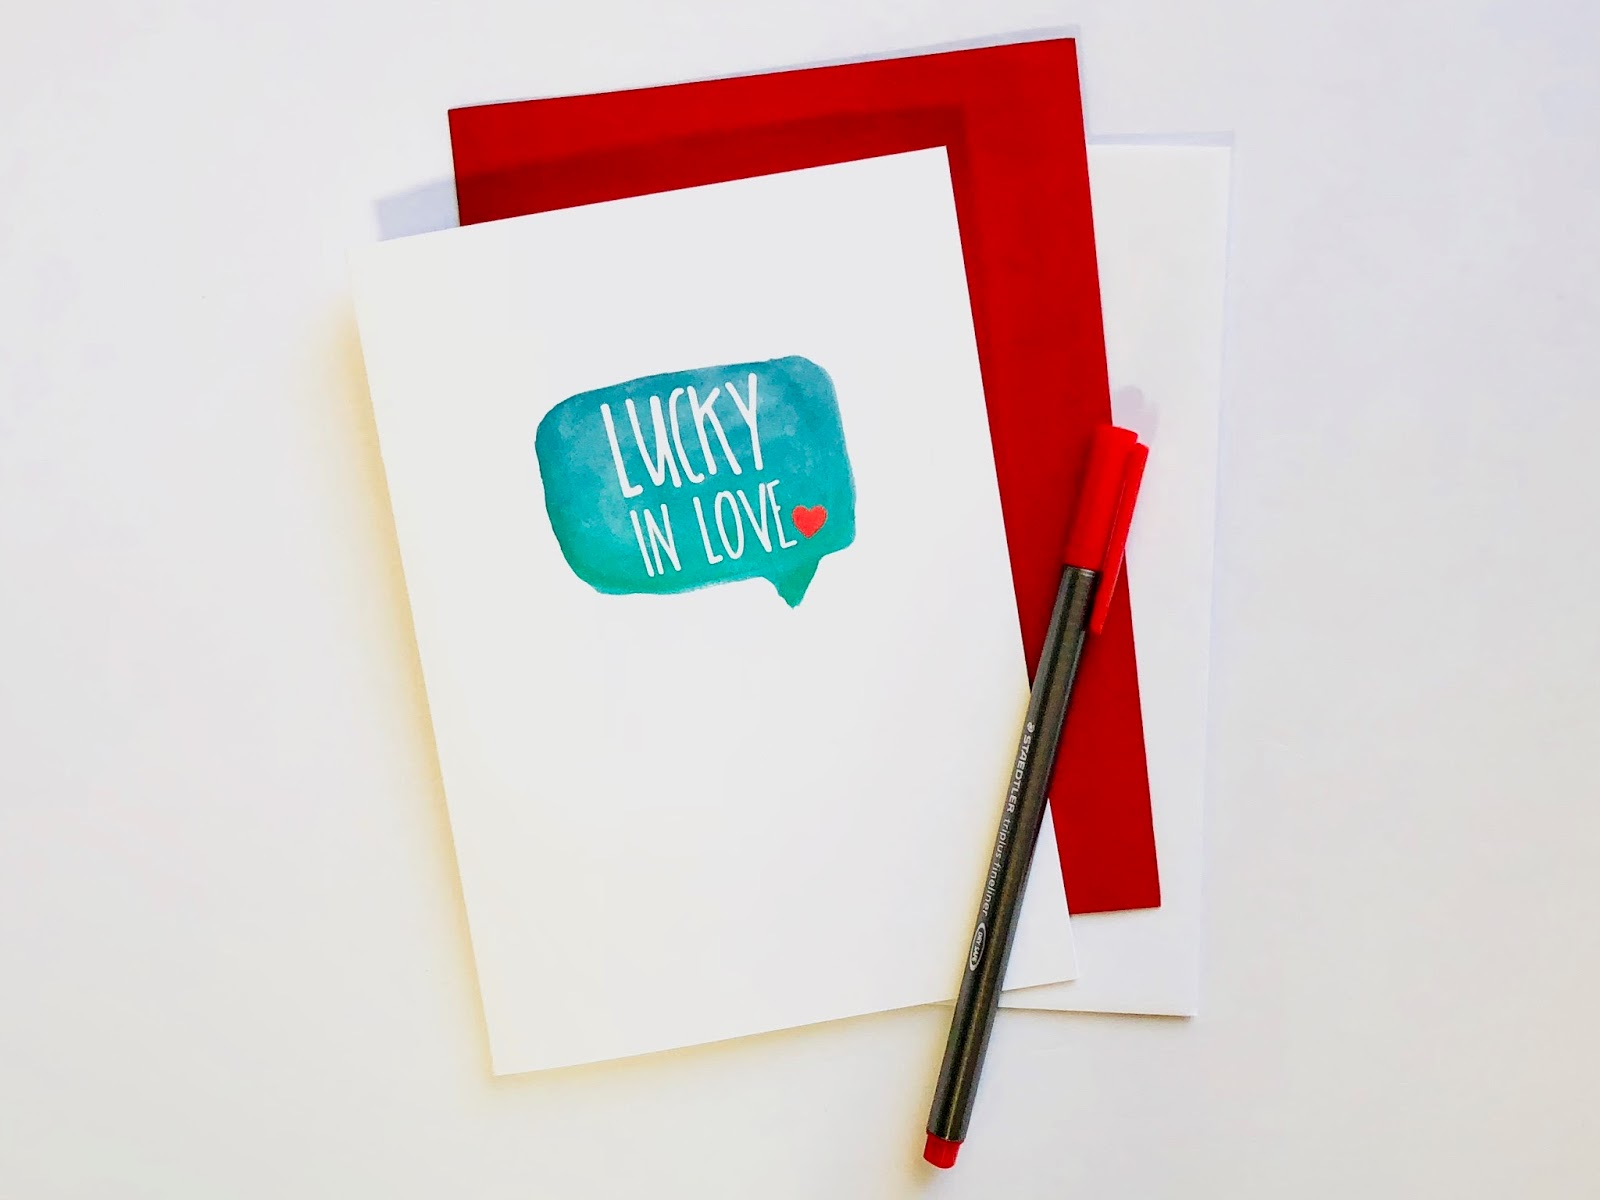 #Lucky In Love #lucky #love #card #Valentine's Day Card #free #download #printable